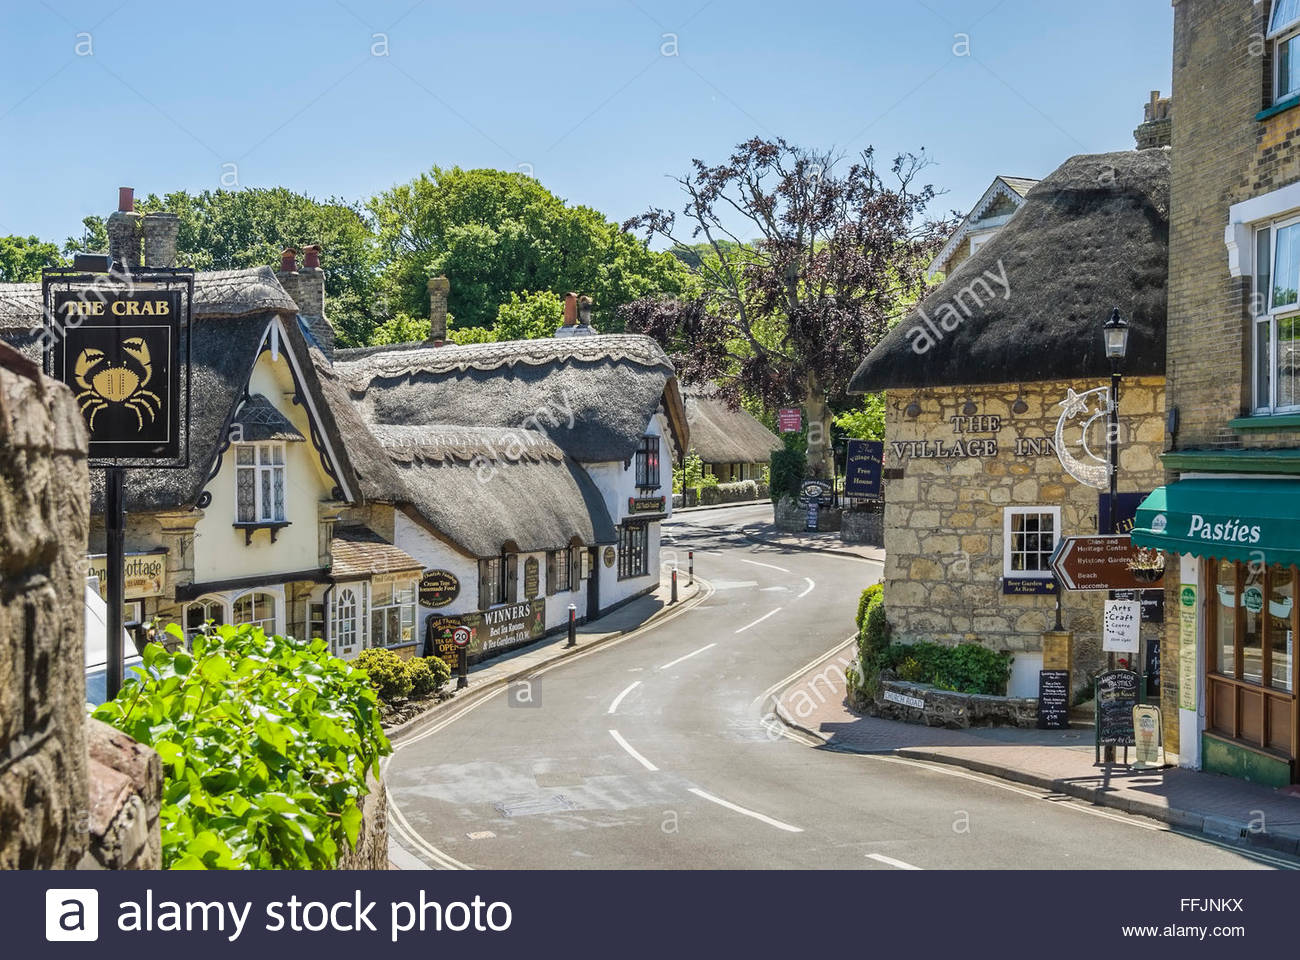 Thatched roof cottages at village Shanklin, Isle of Wight, South England Stock Photo